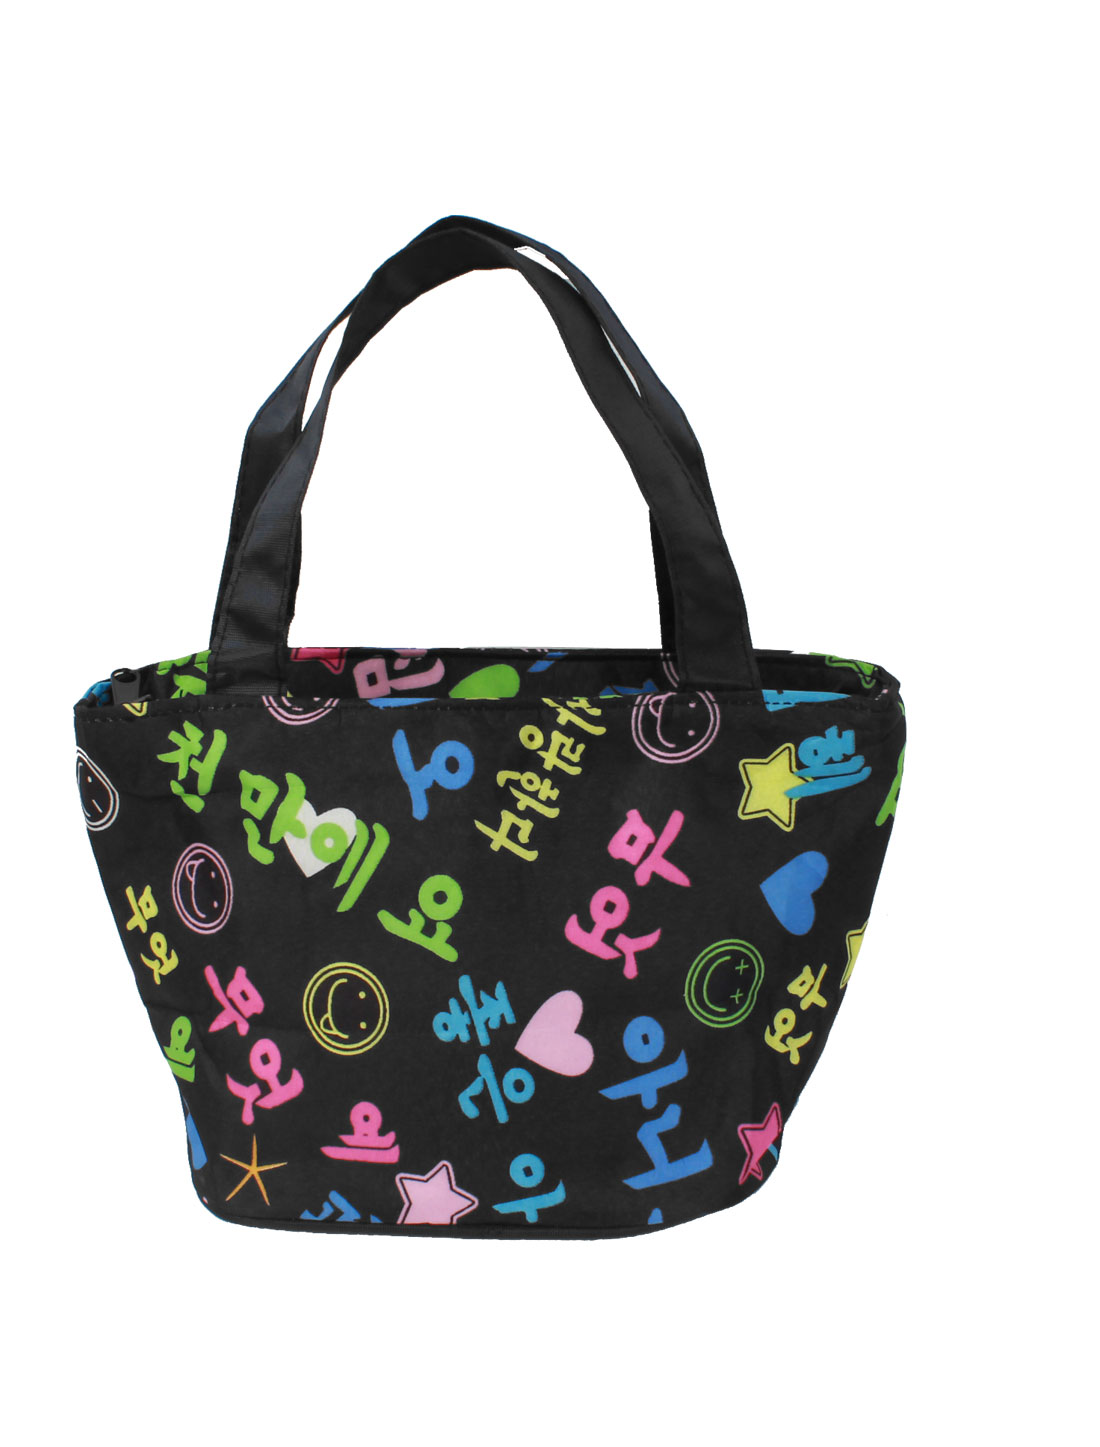 Colorful Letters Prints Zipper Closure Recycle Shopping Handbag Black for Lady